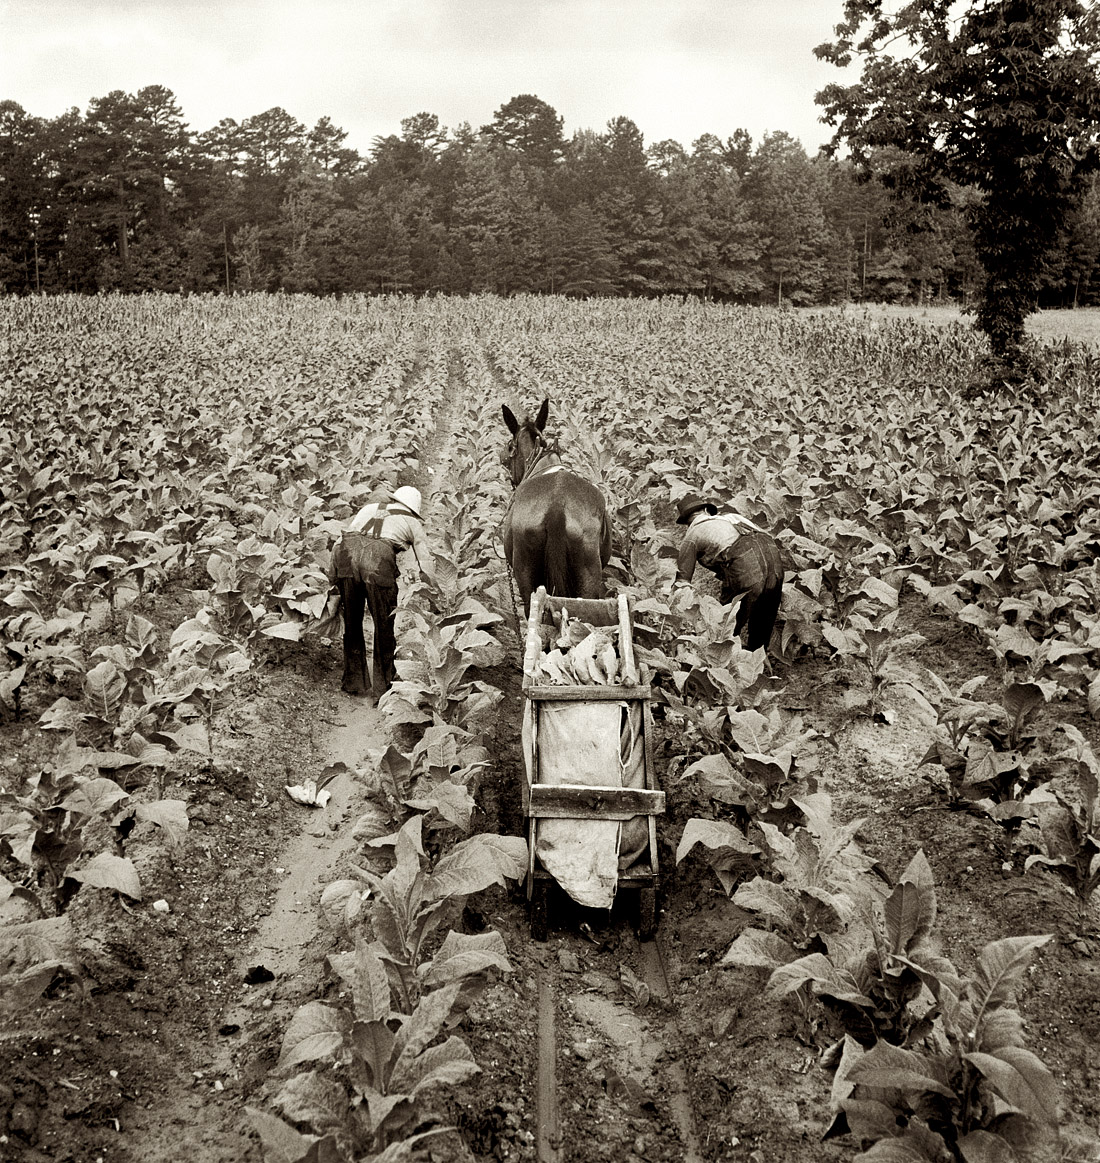 Farm security administration pictures Migrant Mother, 1936 - EyeWitness to History